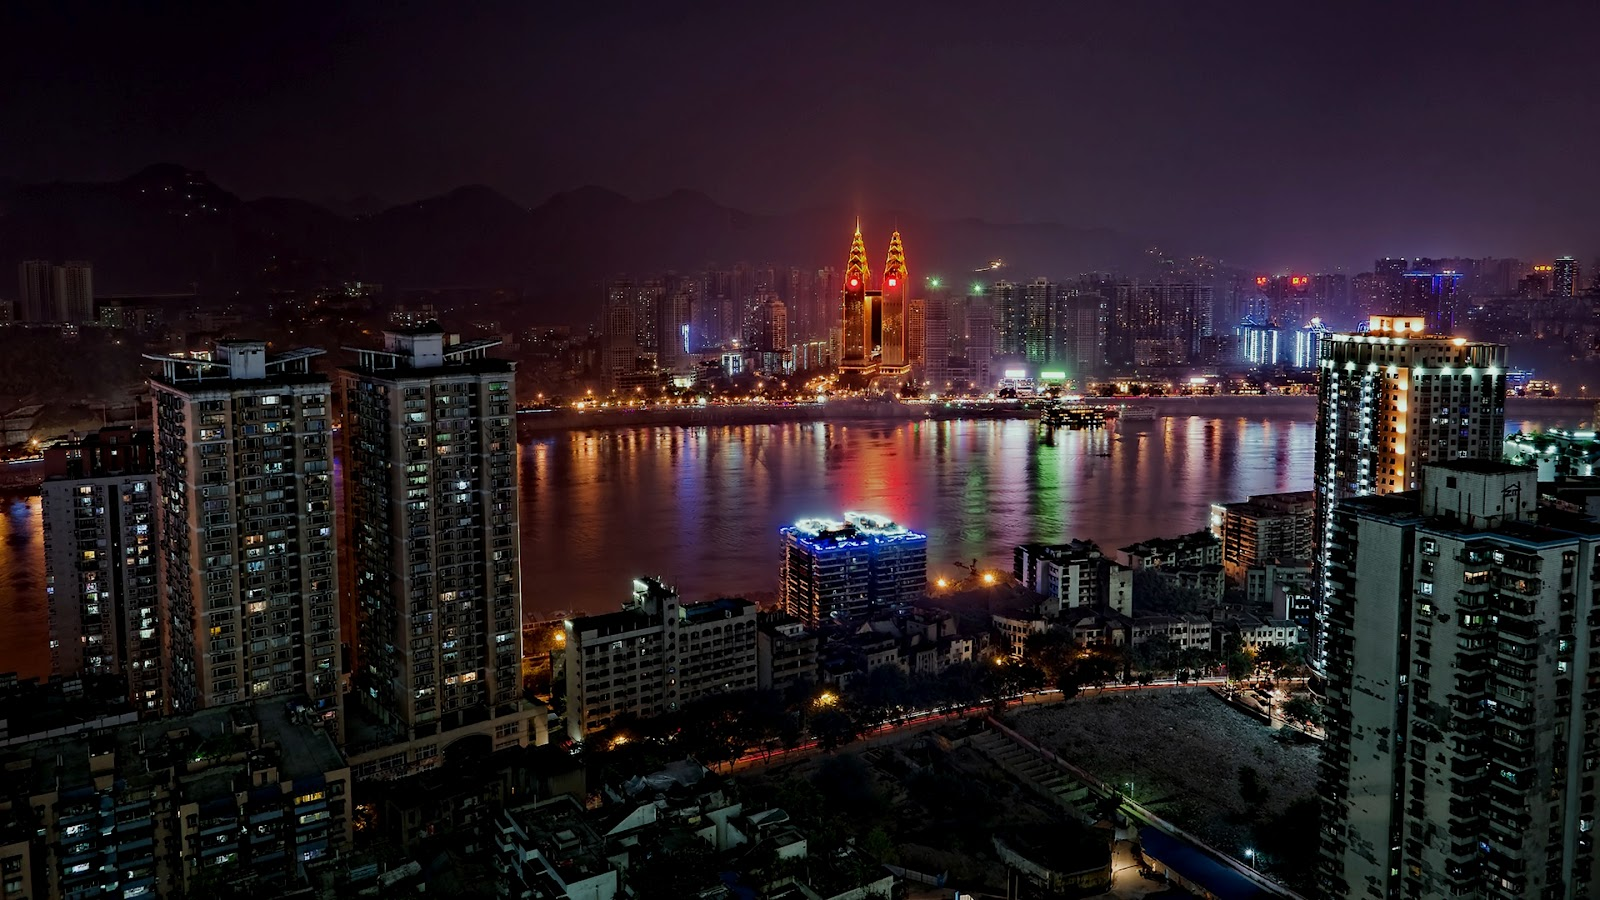 Chongqing China  city pictures gallery : ... Sìchuān , Chóngqìng is getting its moment in China 's spotlight